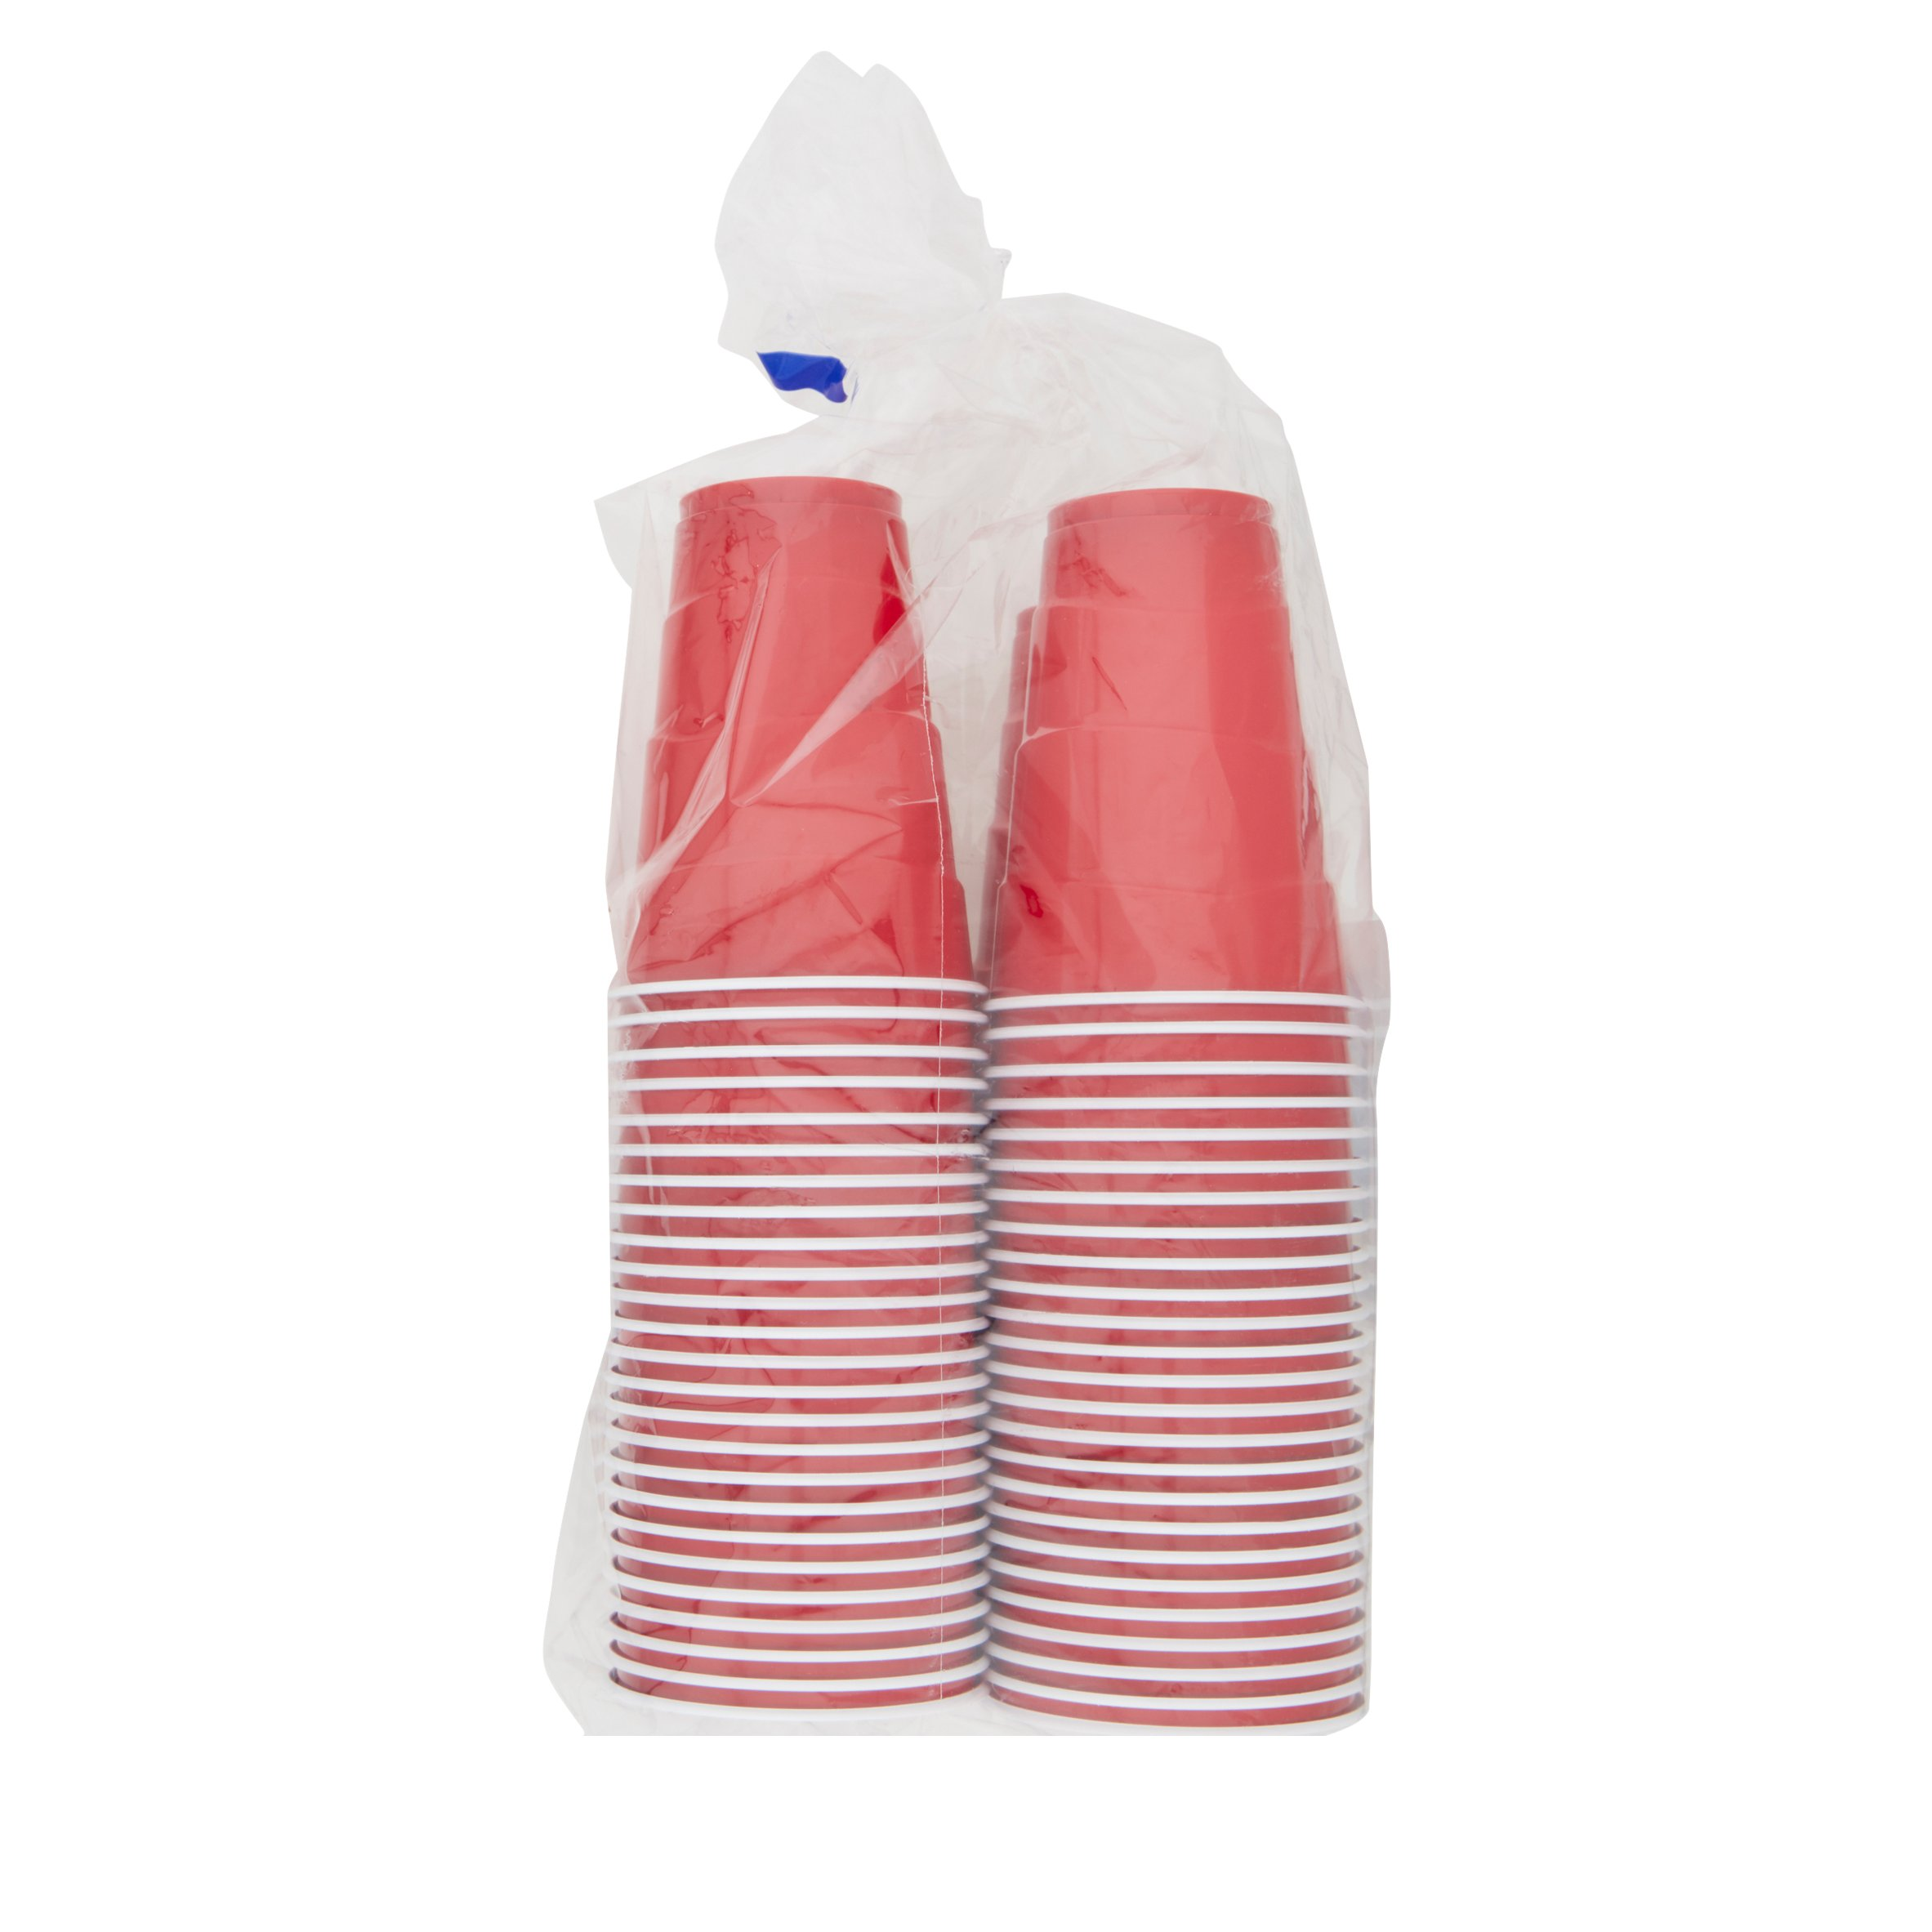 Great Value Party Plastic Cups, 18 oz, 100 Count - Walmart.com